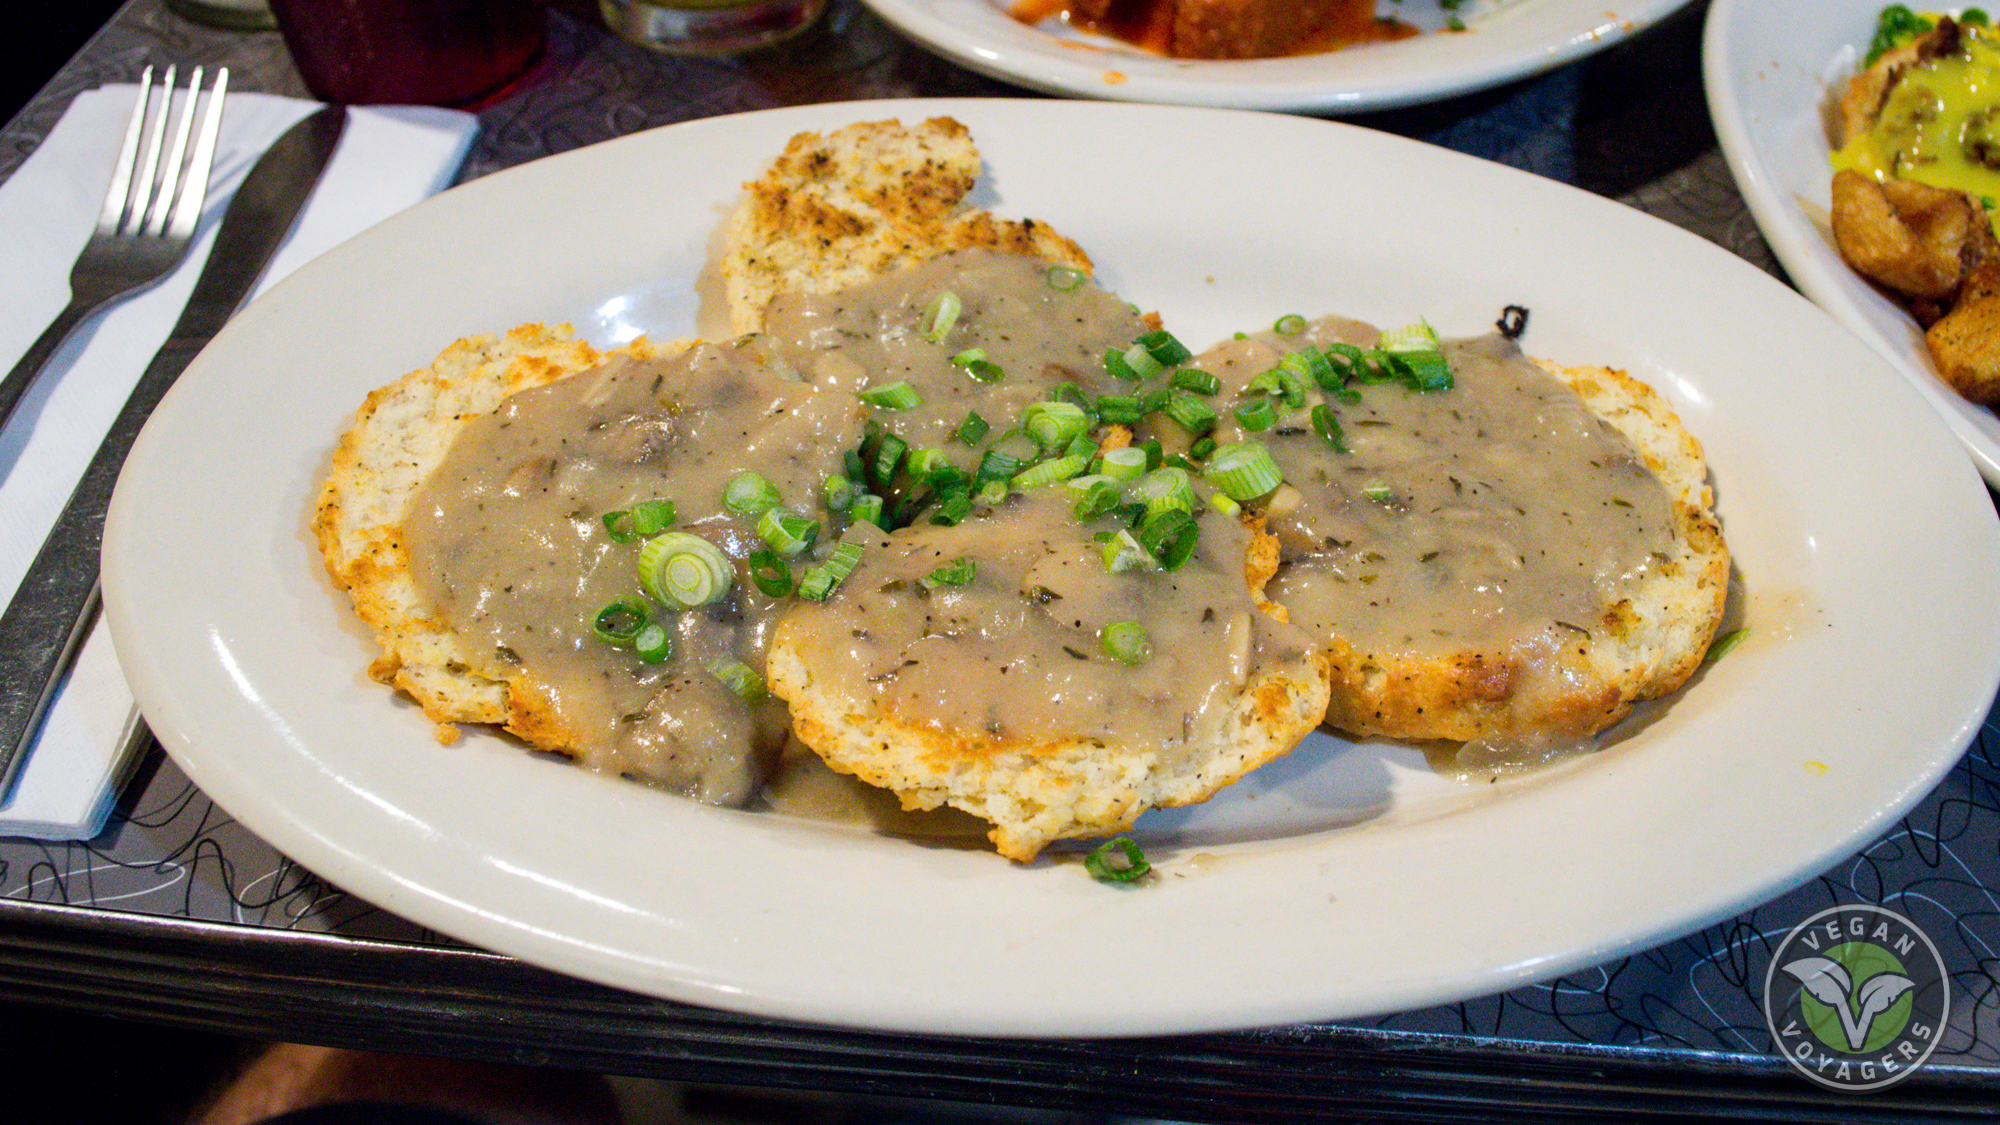 Vegan biscuits and gravy | Veggie Galaxy, Boston, MA